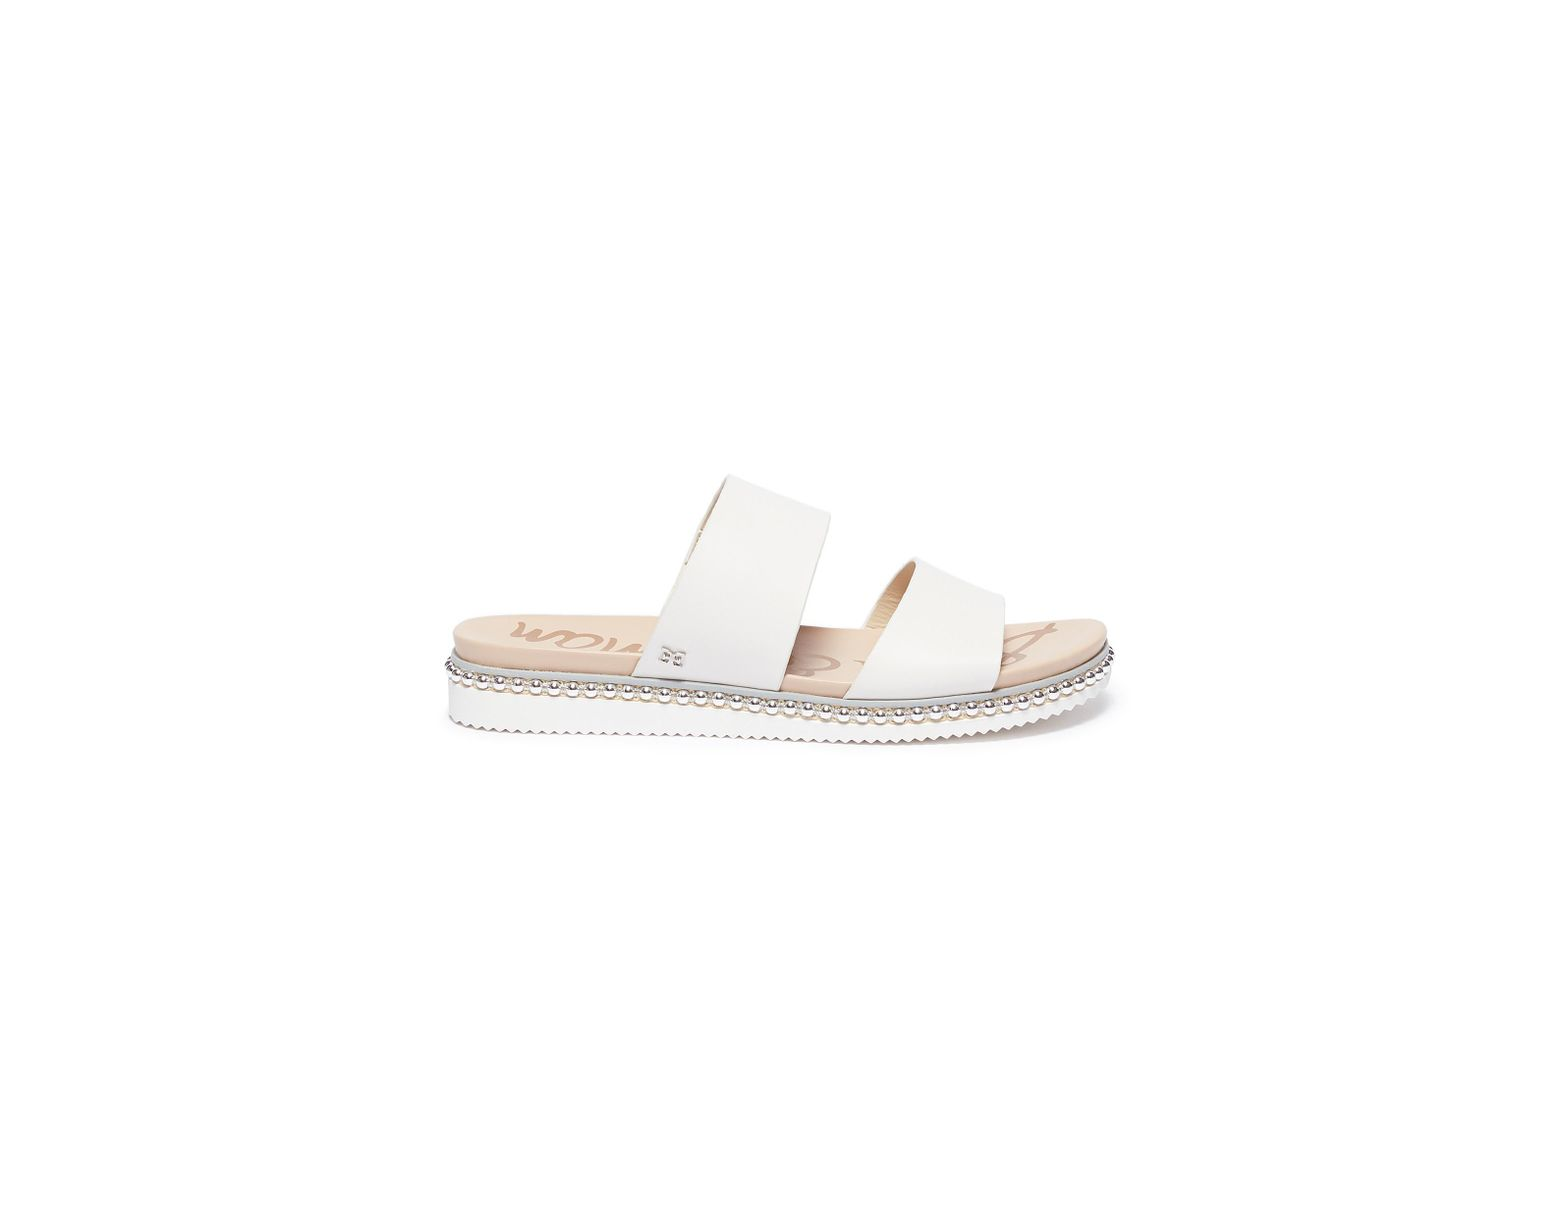 fffa2c9fa Sam Edelman 'asha' Stud Welt Leather Slide Sandals in White - Lyst